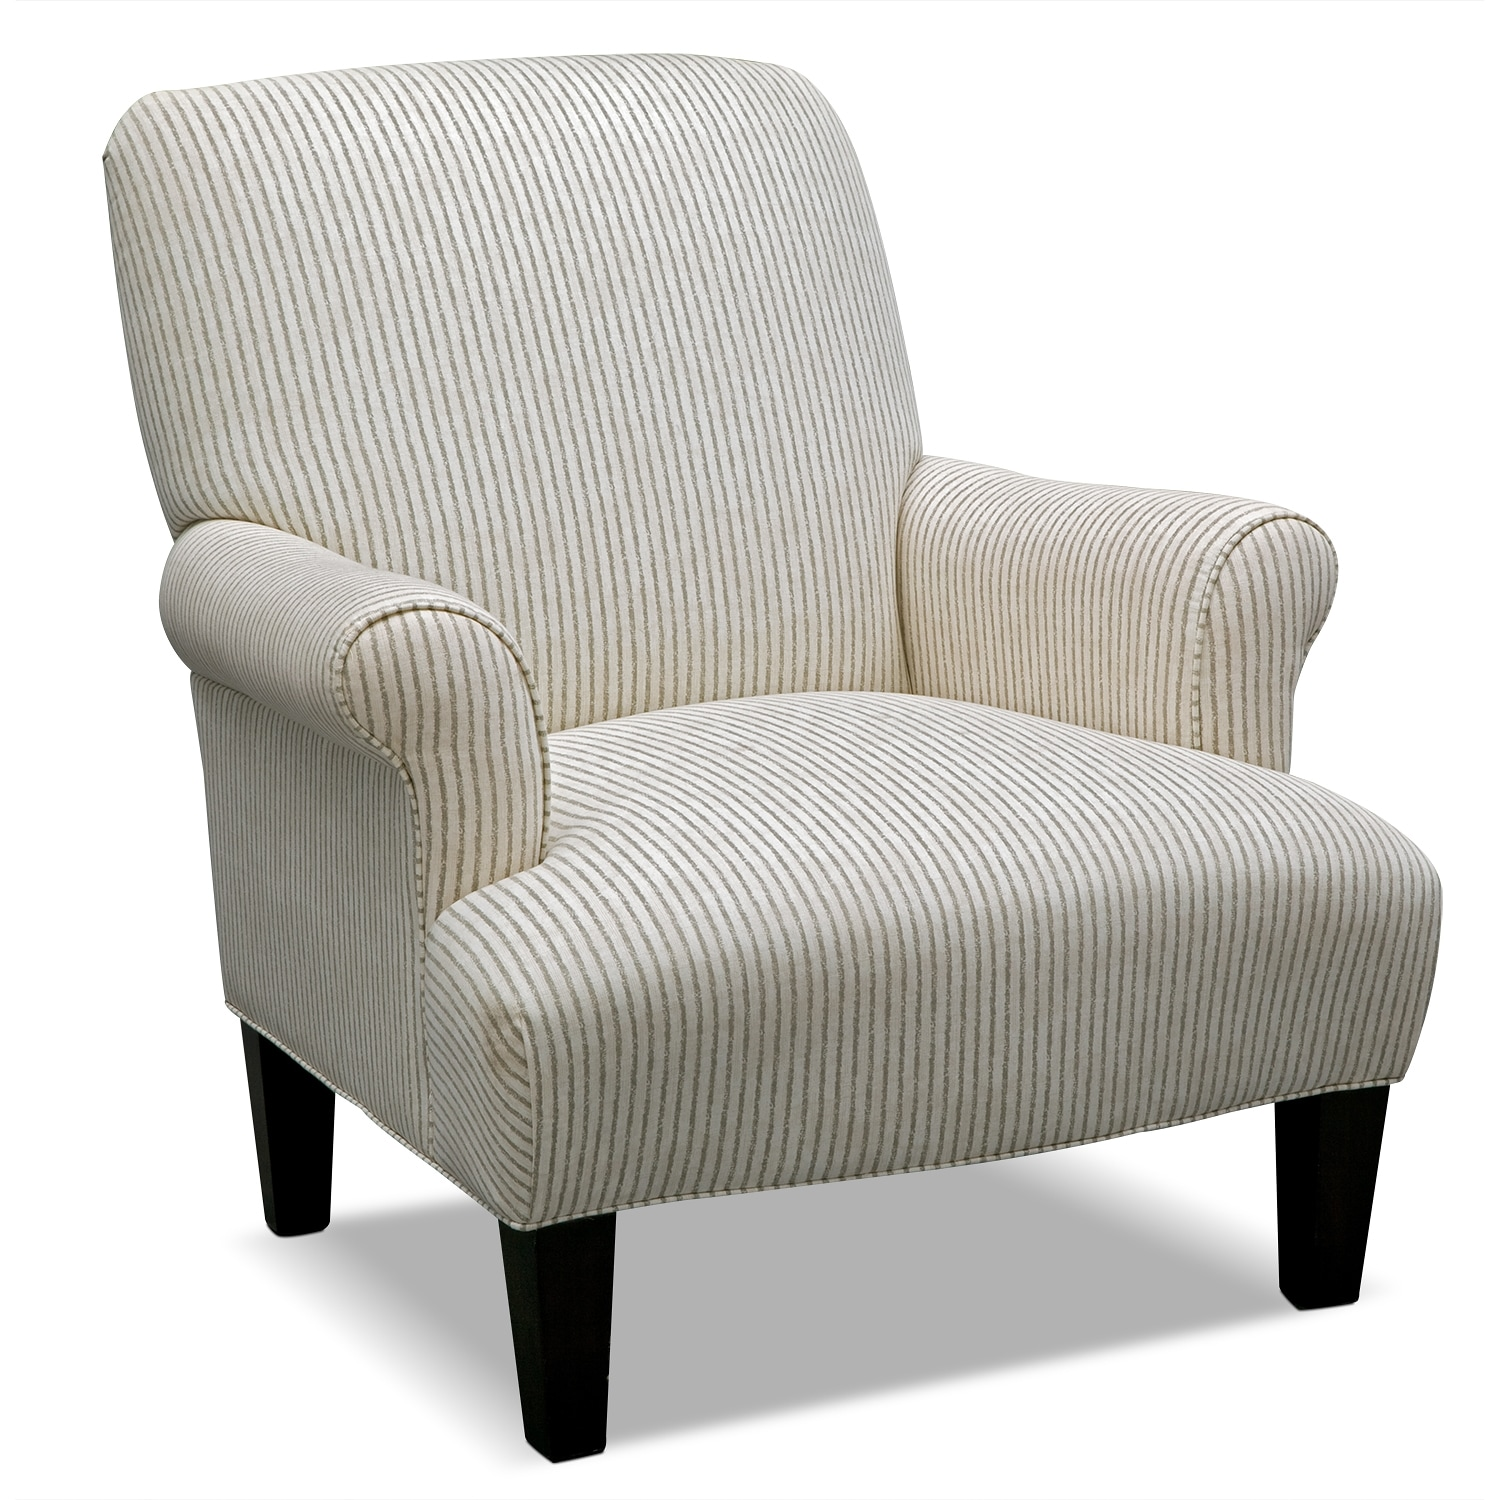 Hadley upholstery 3 pc living room w accent chair for Living room with accent chairs